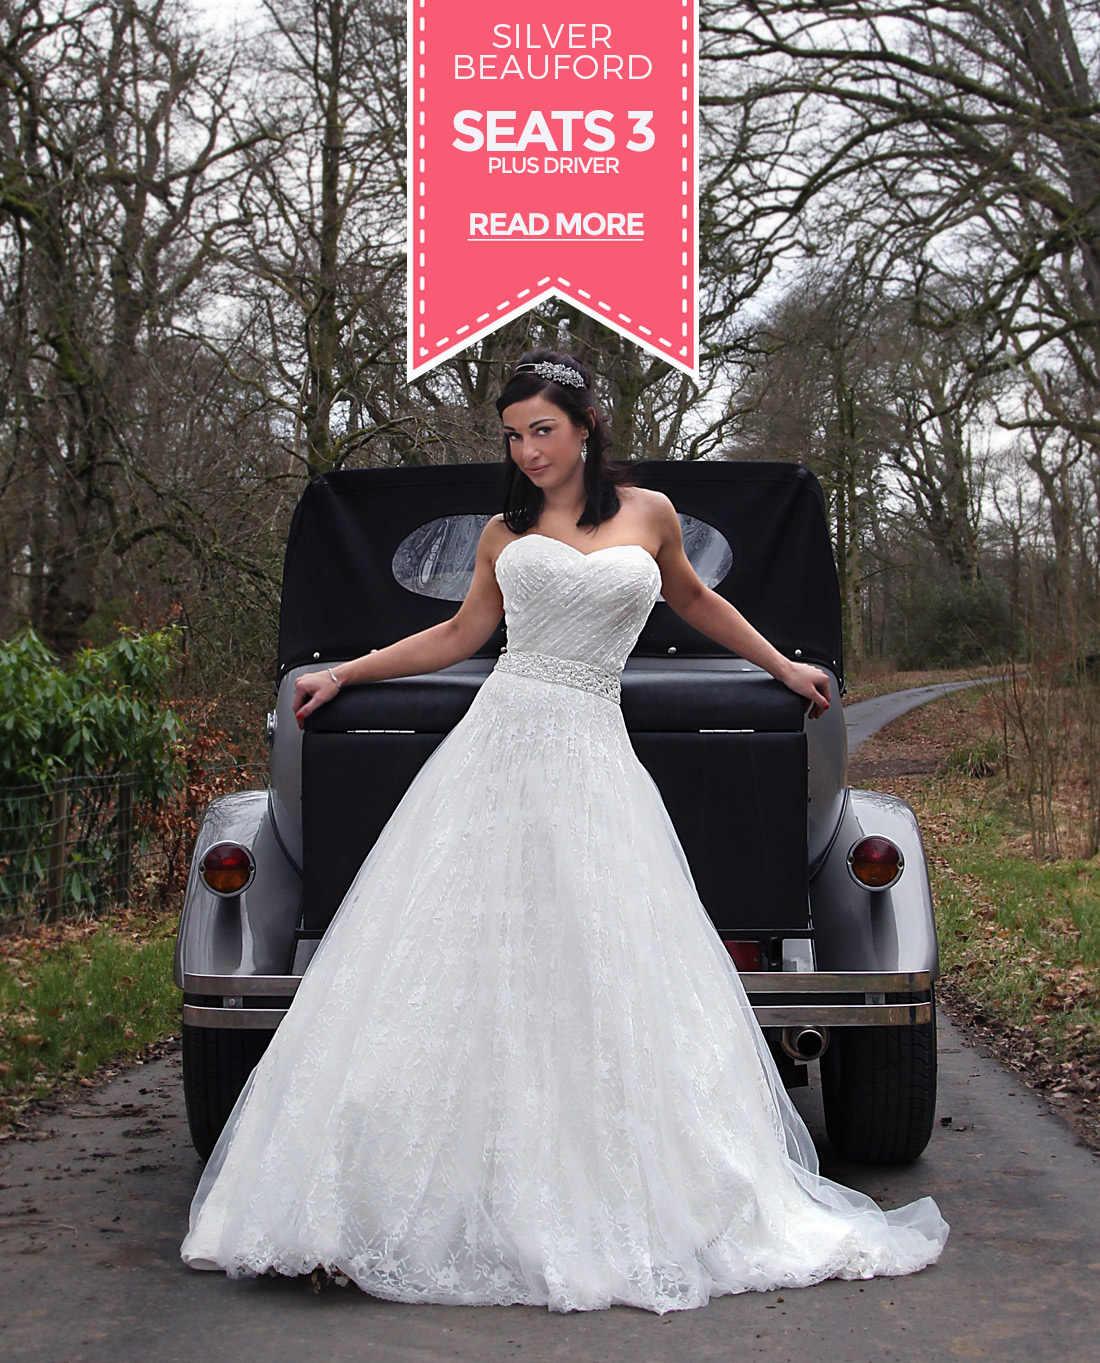 Silver bridal cars of glasgow, wedding cars barrhead